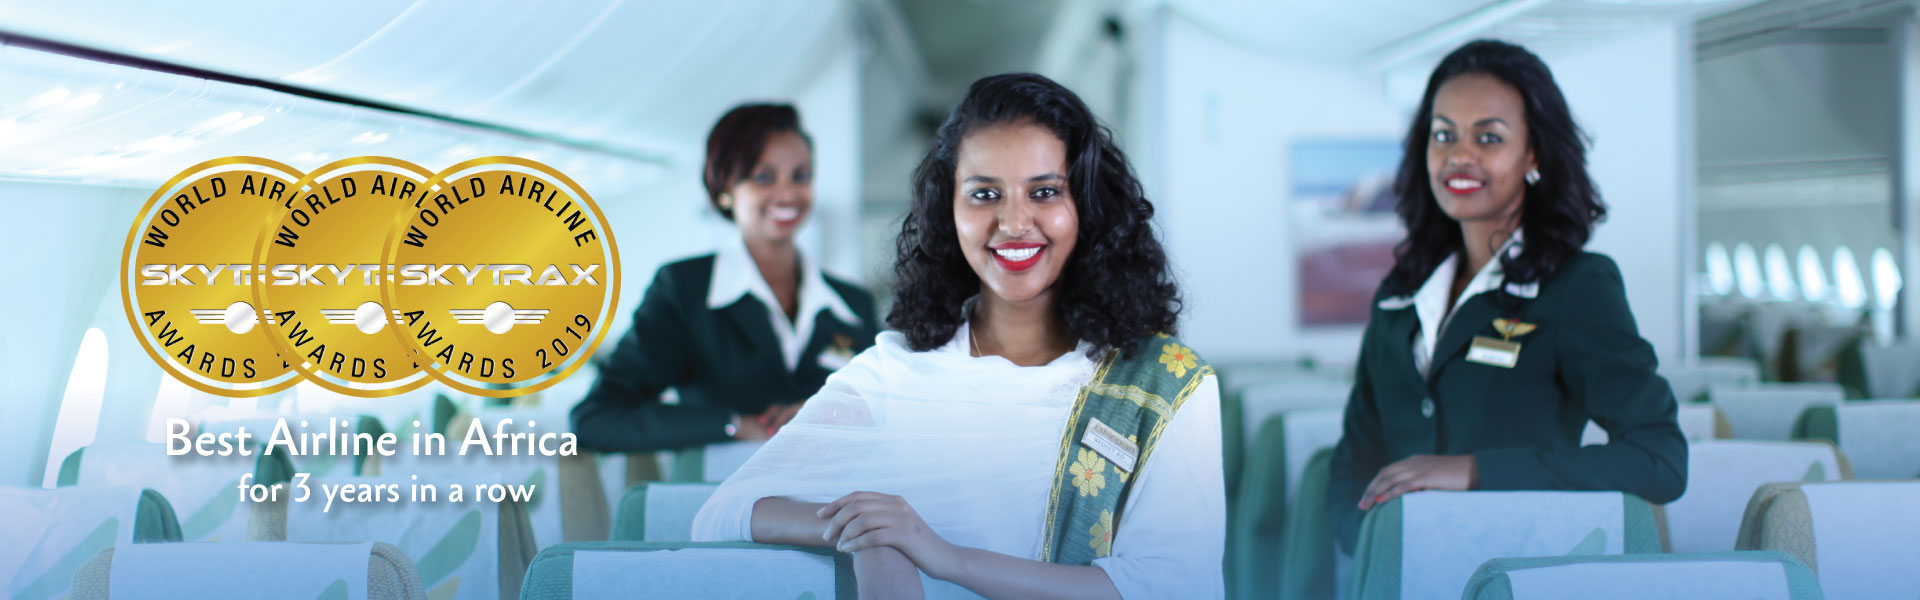 Ethiopian Airlines Group is Voted 'Best Airline in Africa' for 3rd Consecutive Year at Skytrax 2019 World Airlines Awards